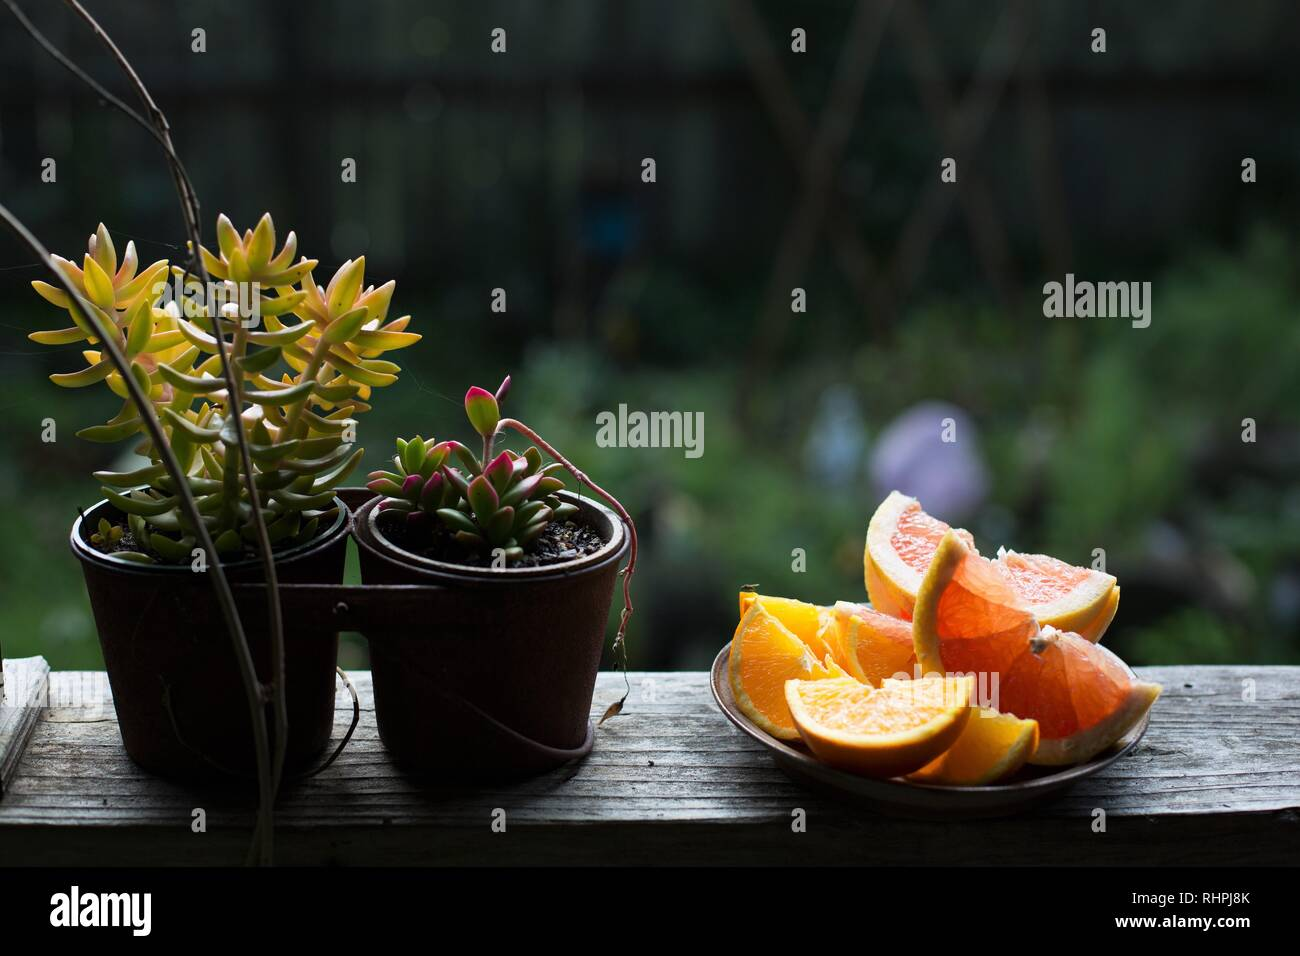 Plants and citrus fruit slices on a porch rail. - Stock Image